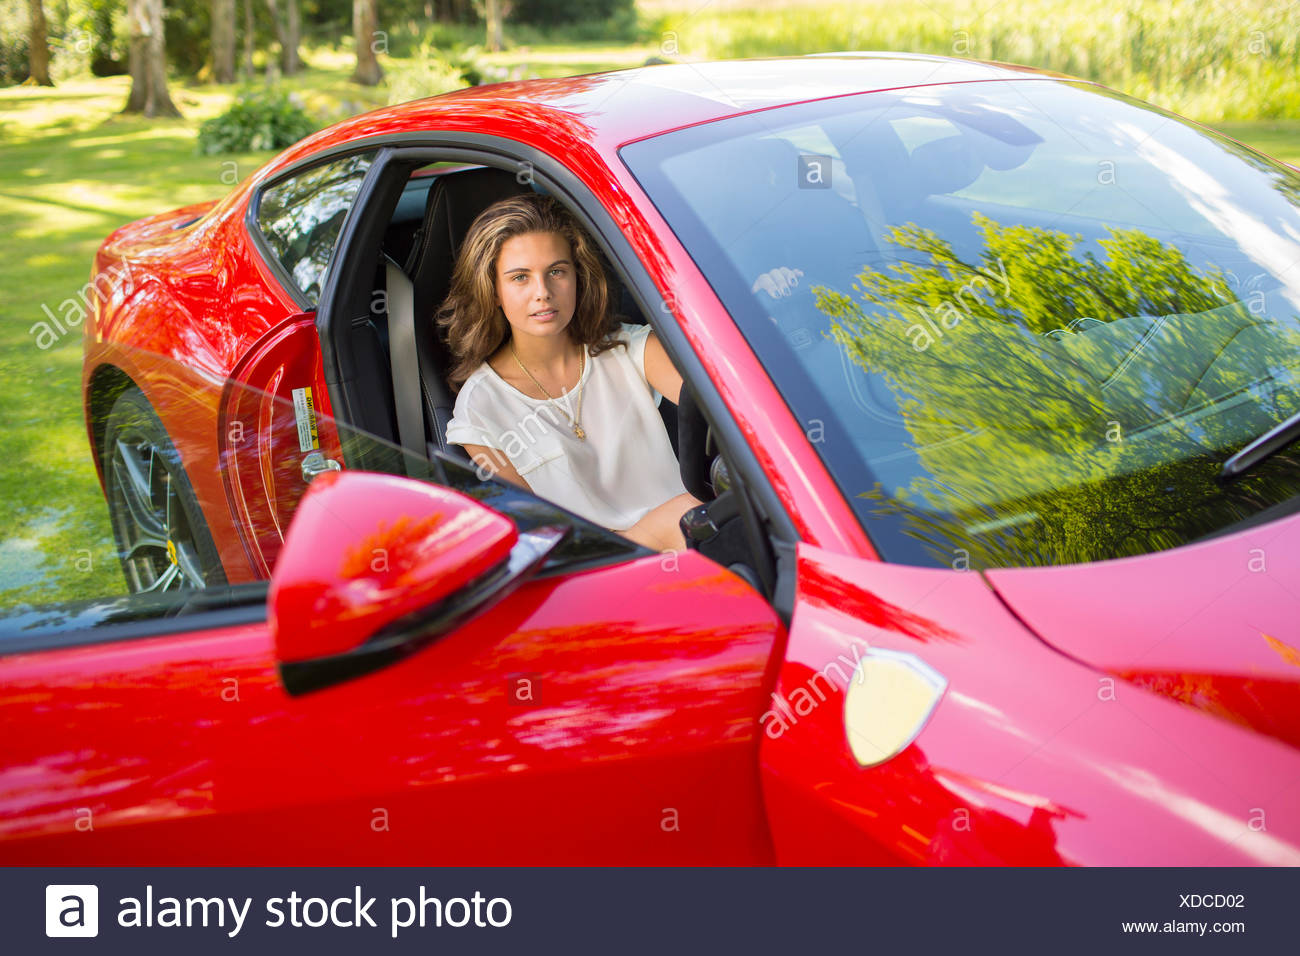 Sweden, Ostergotland, Mjolby, Teenage girl (14-15) sitting in red car - Stock Image